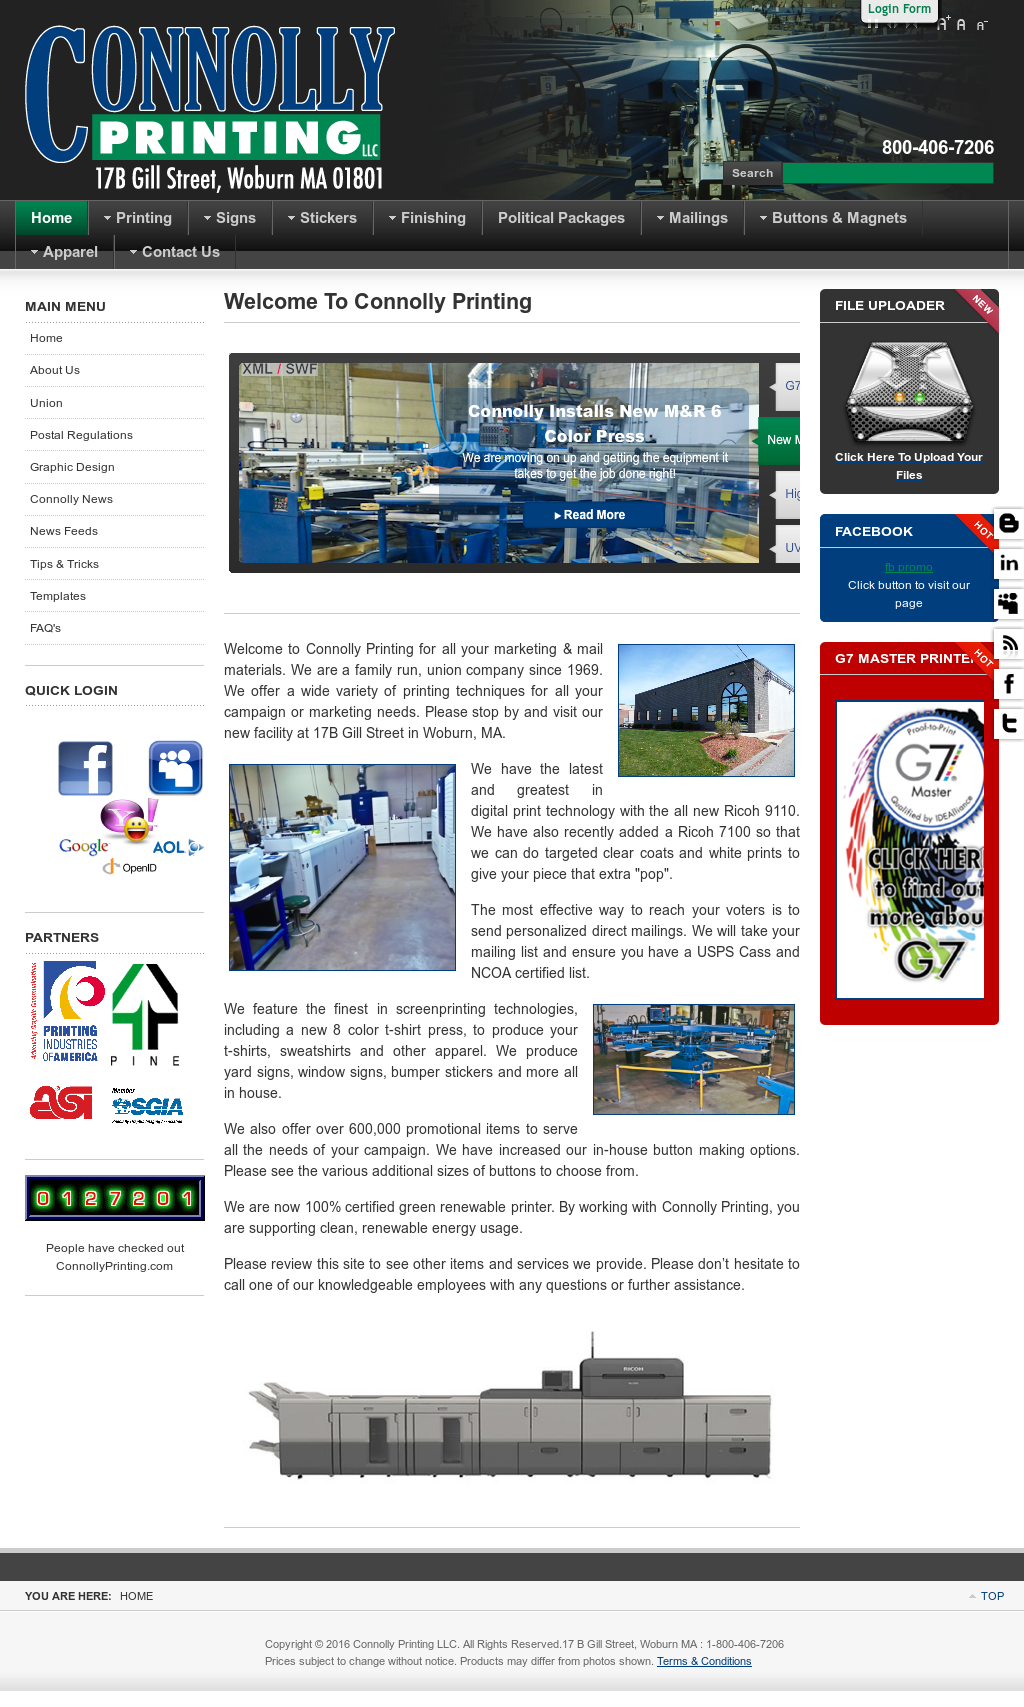 Connollyprinting Competitors, Revenue and Employees - Owler